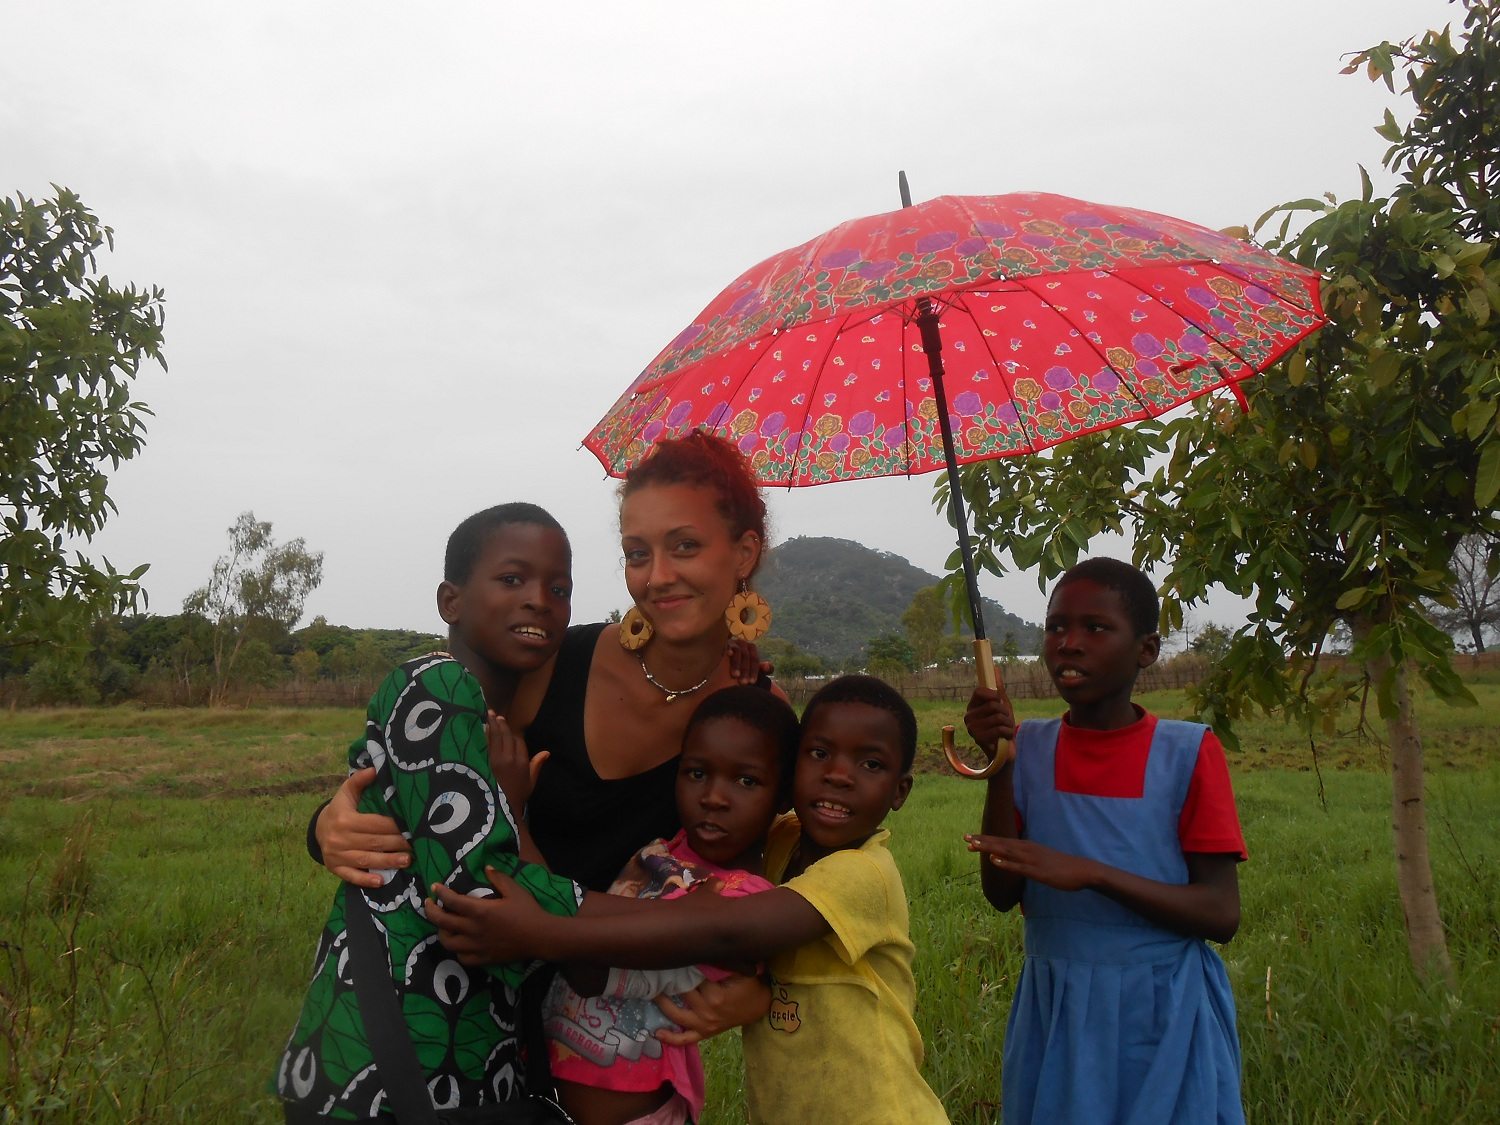 Spring-News from Malawi